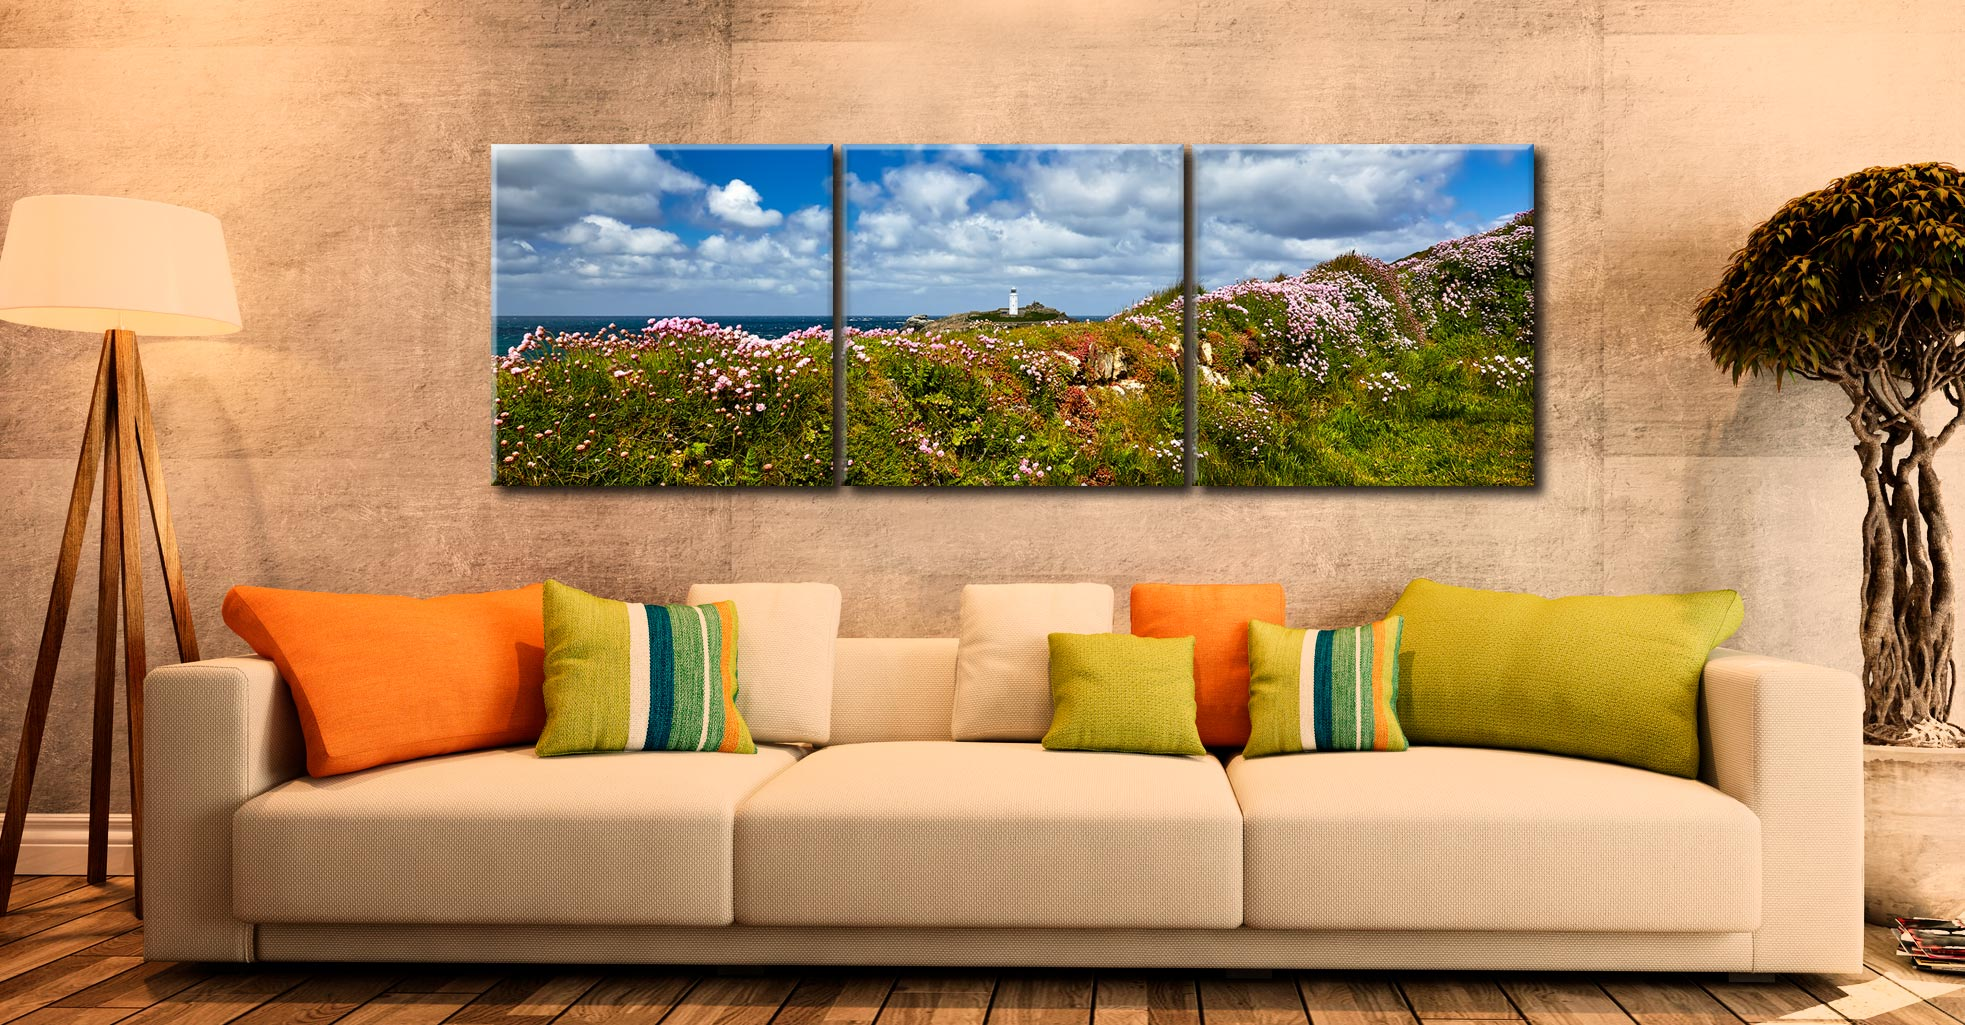 Wildflowers at Godrevy - 3 Panel Canvas on Wall